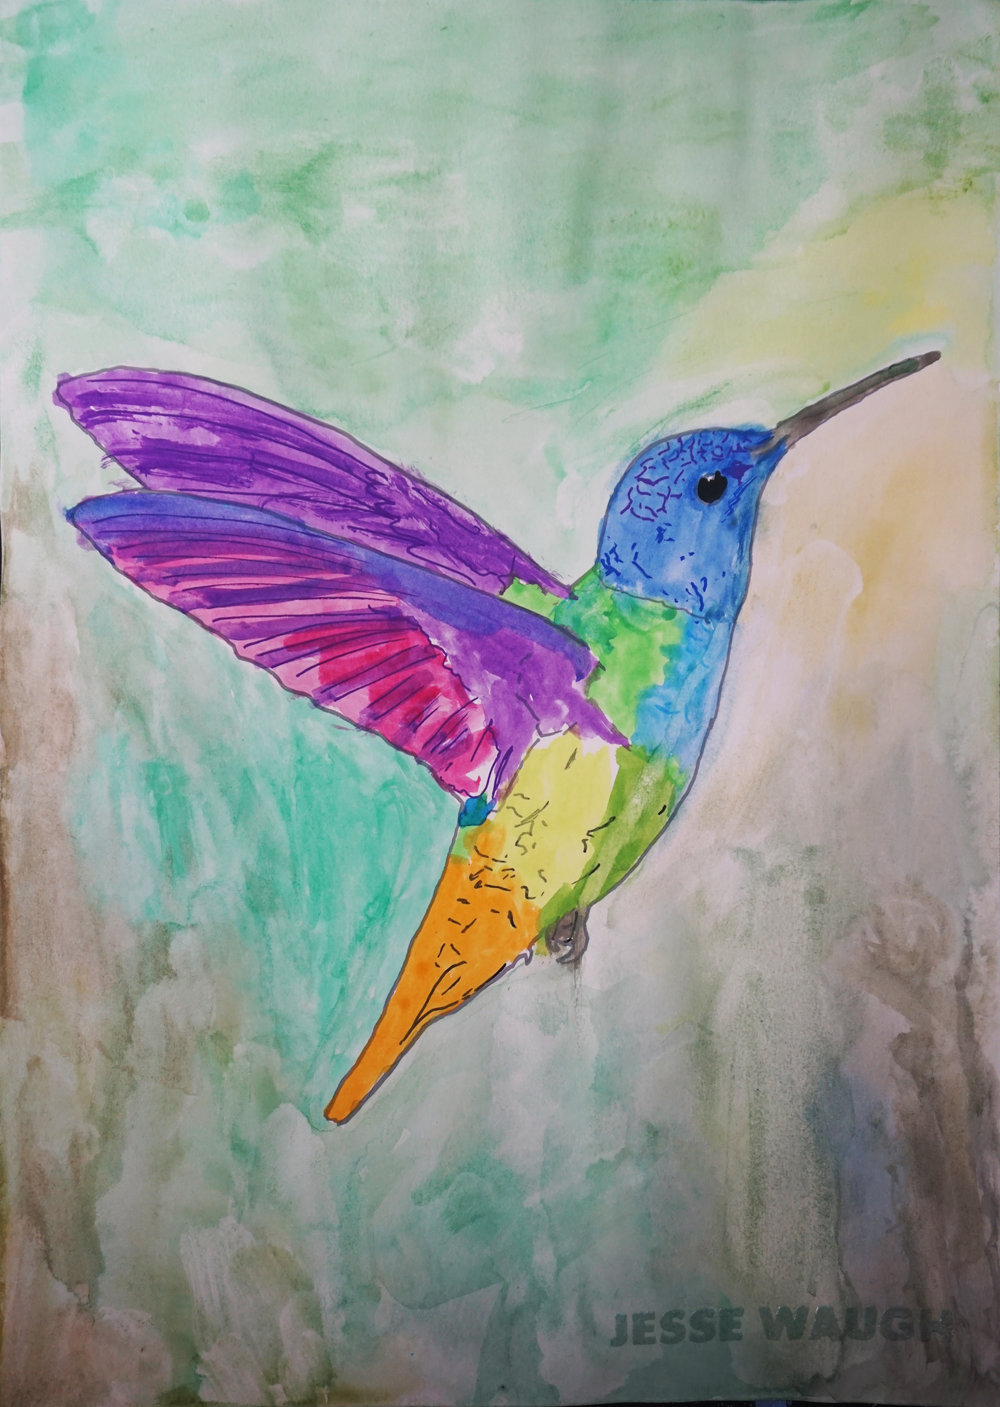 Jesse Waugh   Colibrí   2017 Watercolor 29.7 X 42 cm (A3)